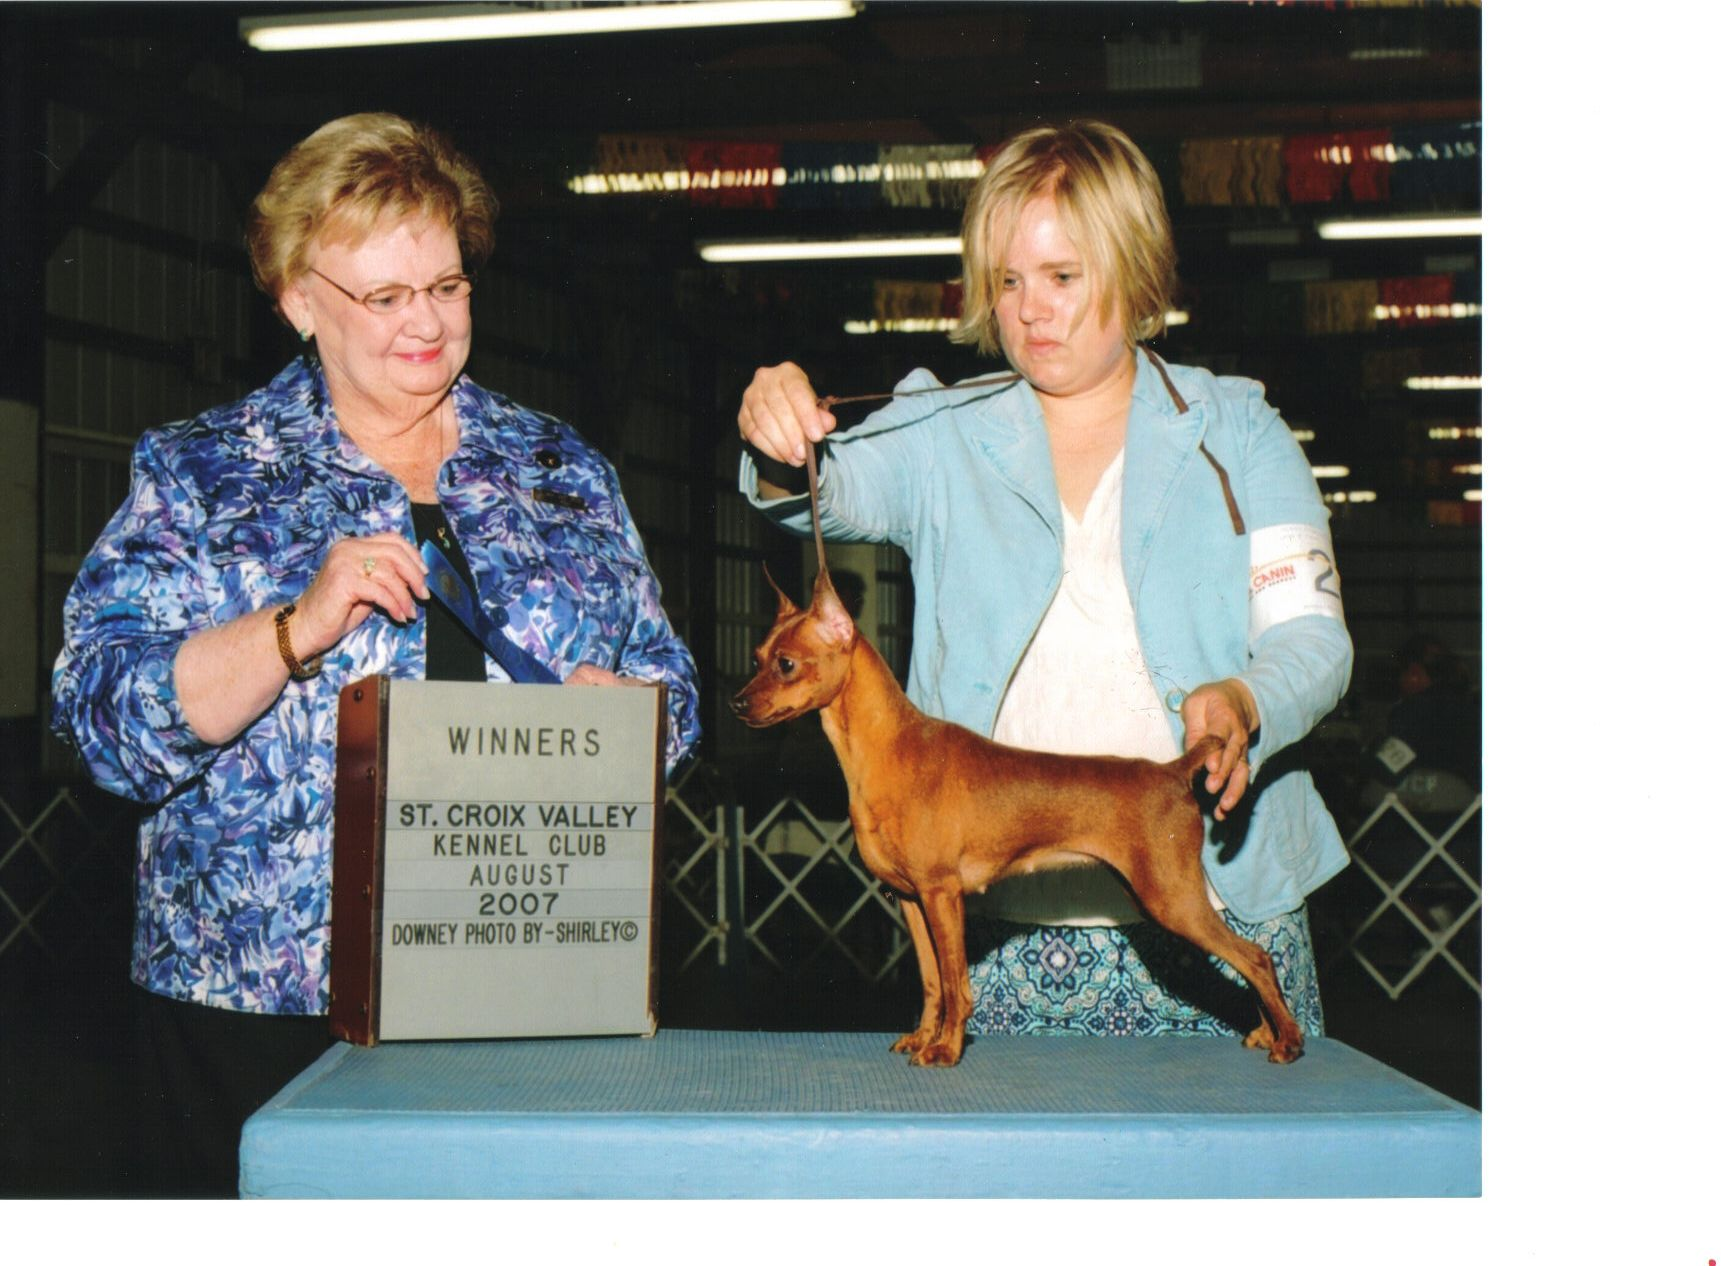 chitina single girls Hannah has earned 12 akc points to date, including one major hannah has gone over specials for the points this little girl has the movement we strive for.